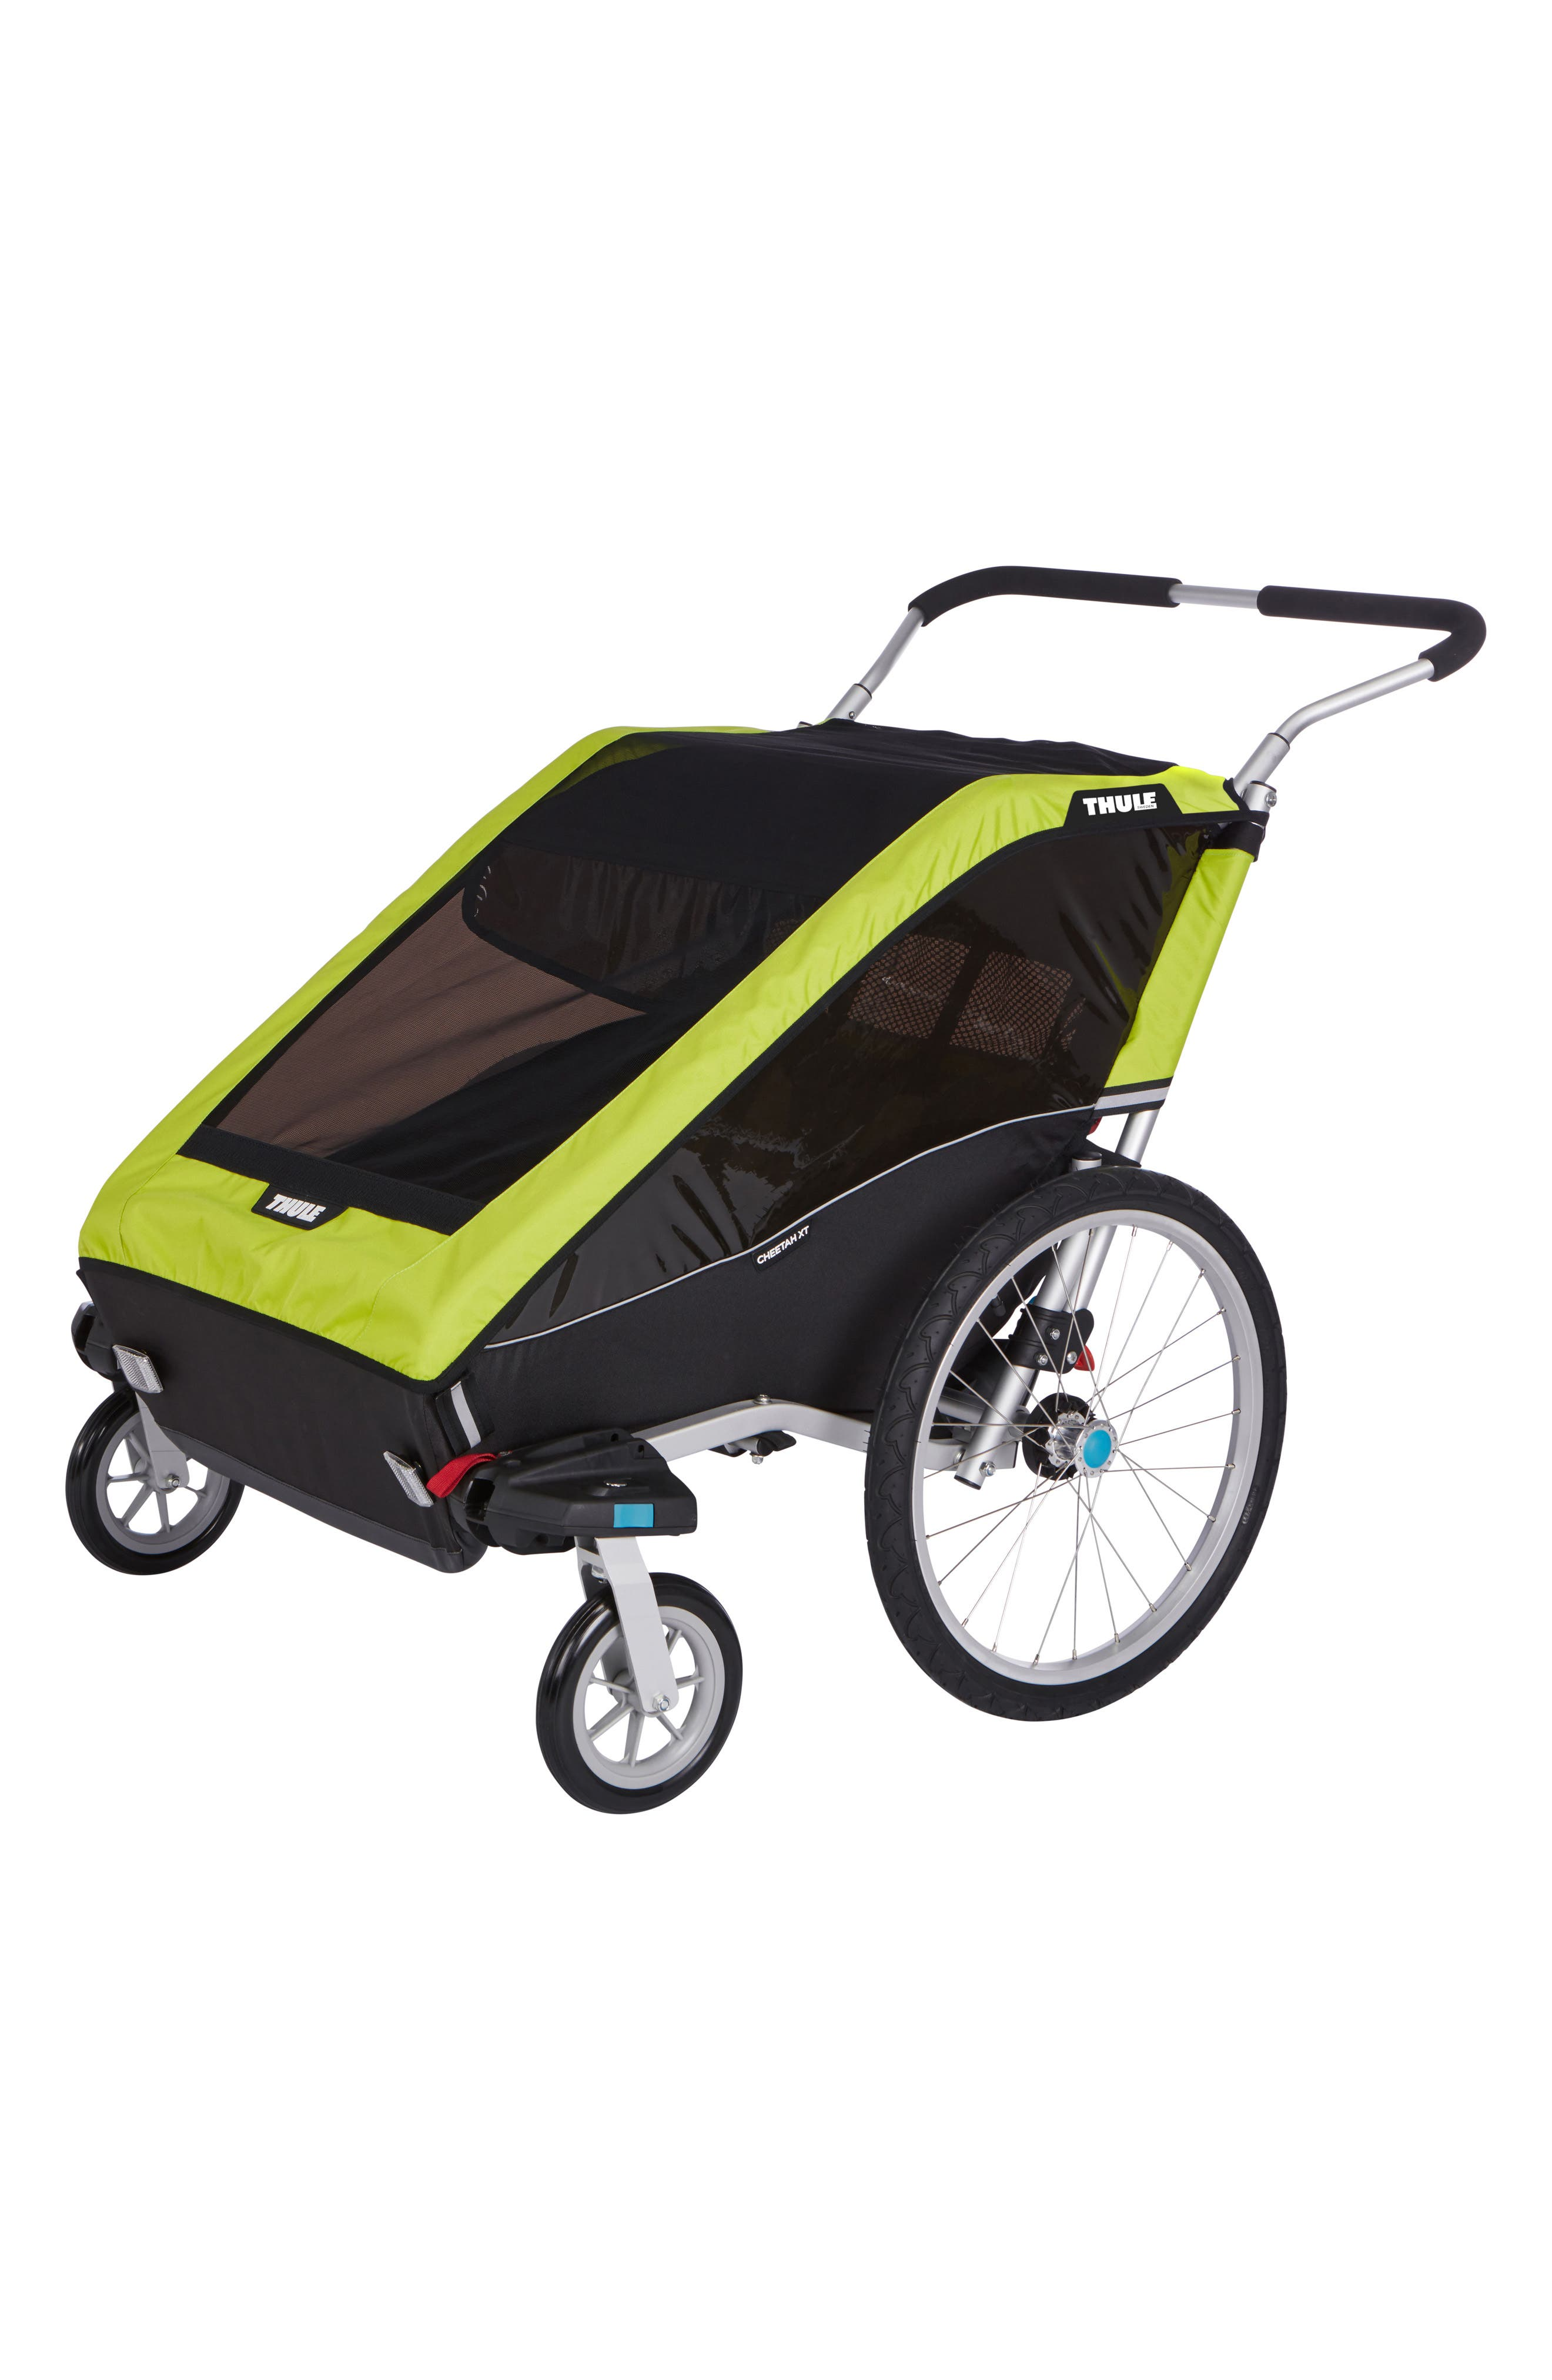 Chariot Cheetah XT 2 Multisport Double Cycle Trailer/Stroller,                             Main thumbnail 1, color,                             Chartreuse